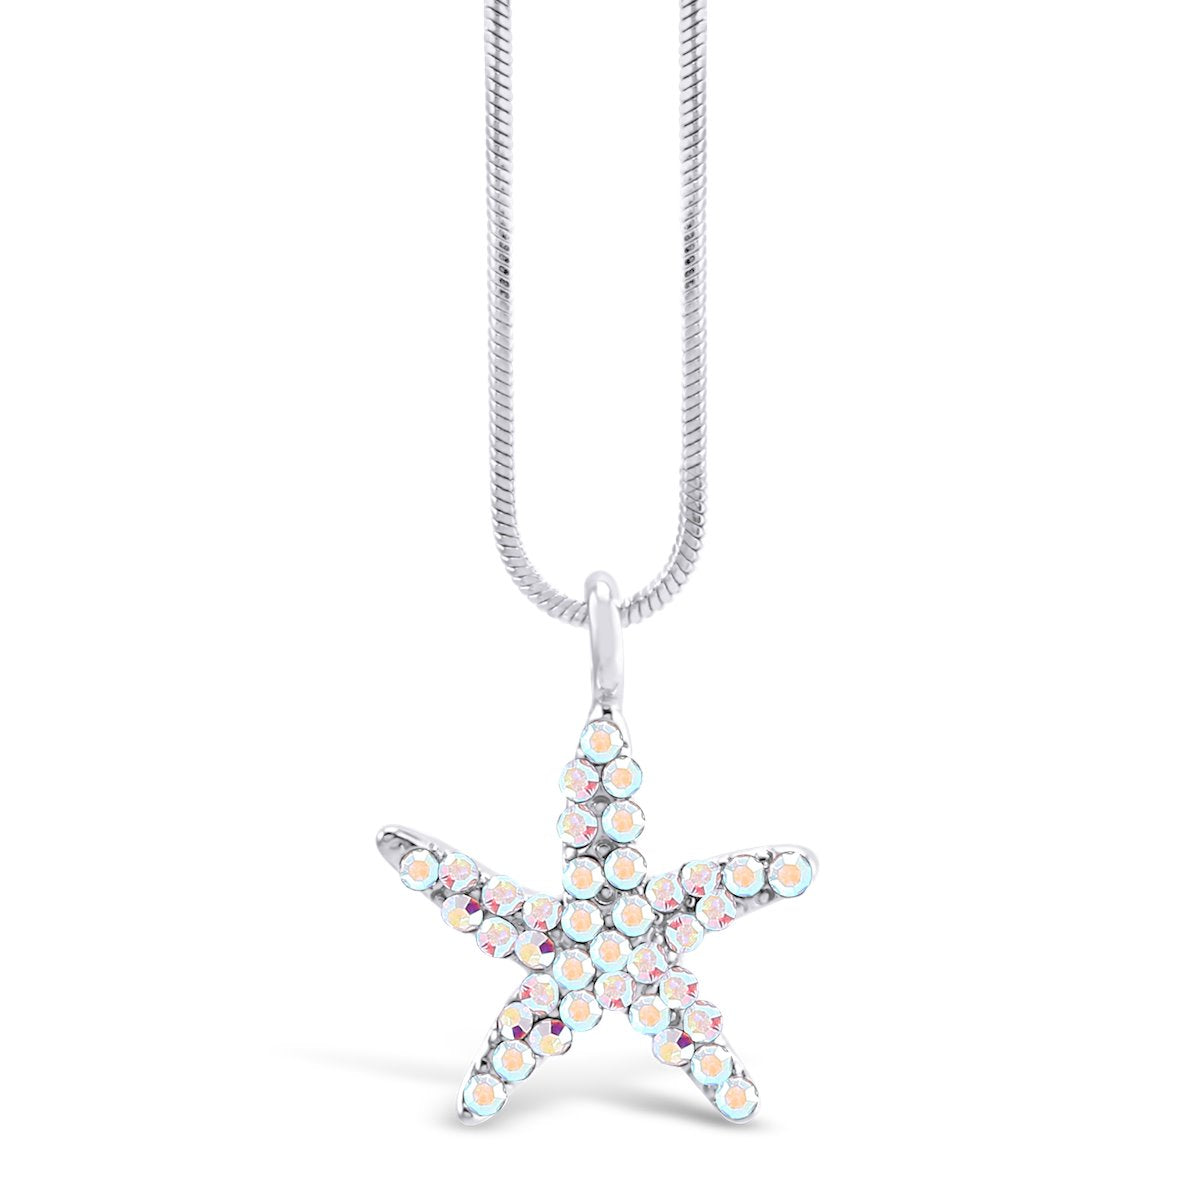 Starfish Pendant PENDANT - FOREVER - VOIAGE SYMBOLS - CRYSTAL forevercrystals